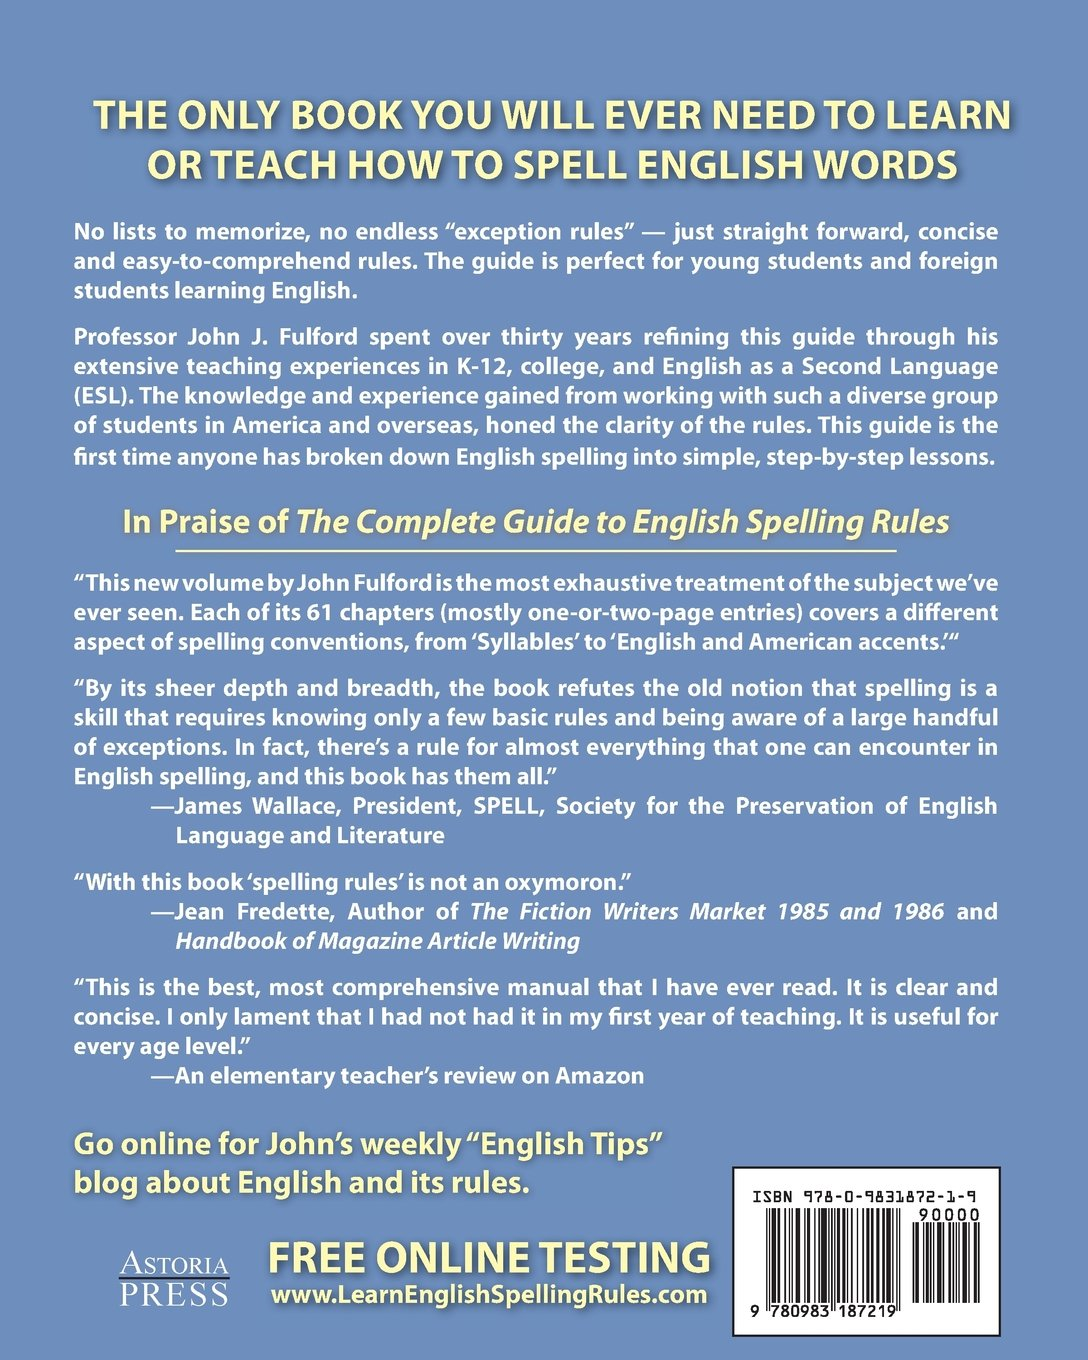 english spelling essay word stress and sentence stress normally when we say i feel stressed it means i feel anxious stress is a kind of worried feeling about life or work but there is another kind of stress that actually helps us understand.